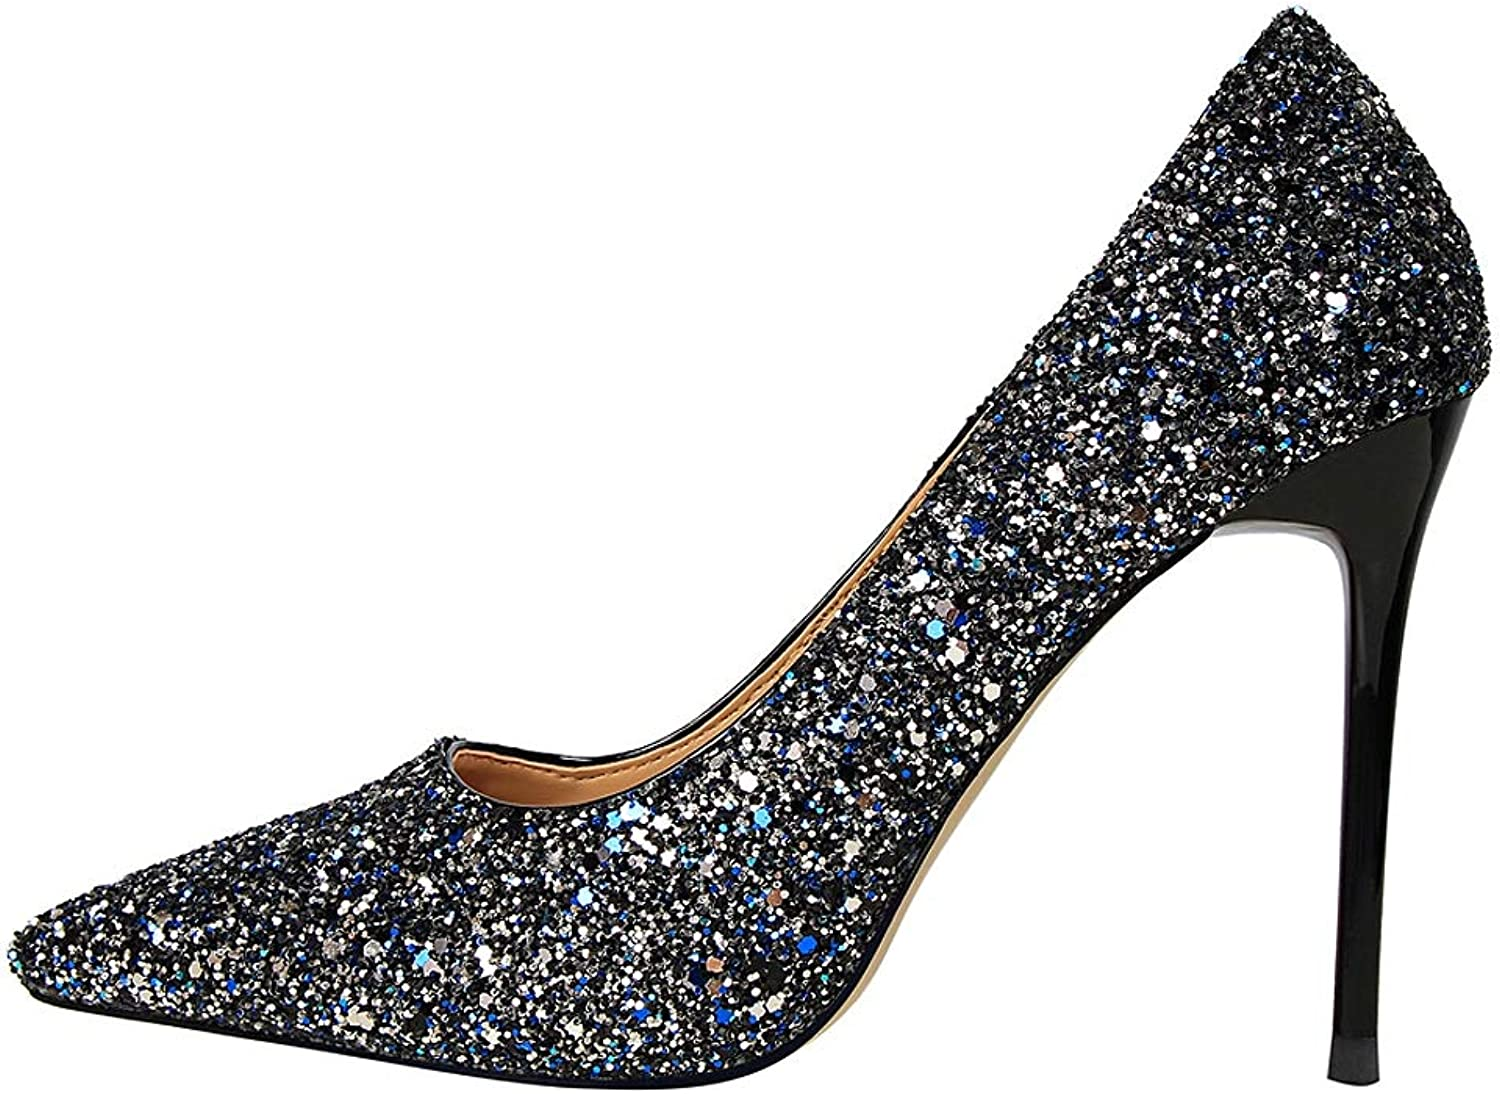 Women's Closed-Toe Pumps Slip On Pointed Stiletto Toe High-Heeled shoes Girls Sexy Black Heeled Glitter Bar shoes